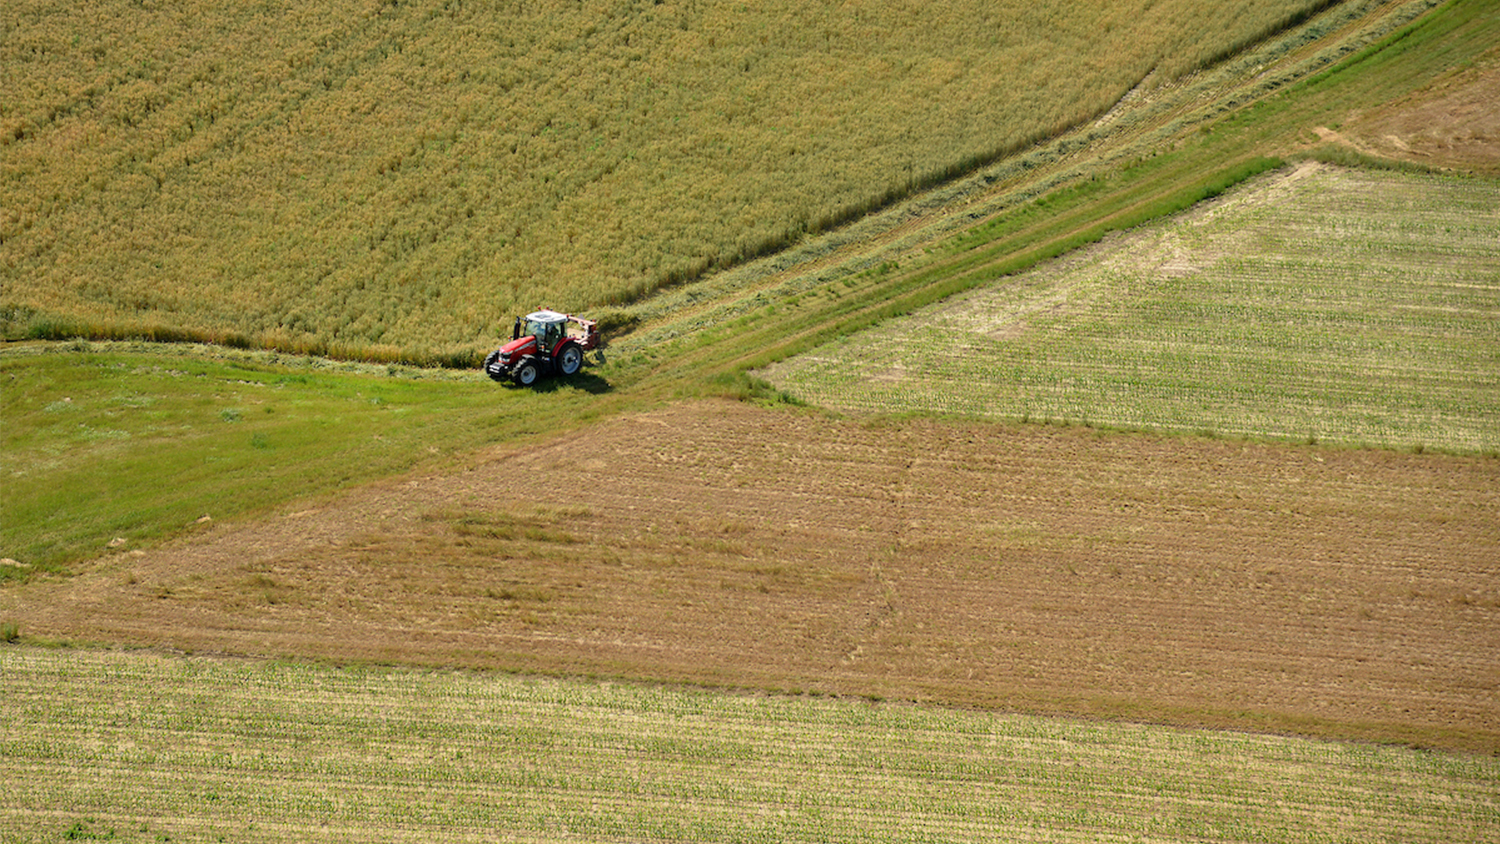 aerial view of tractor on a farm